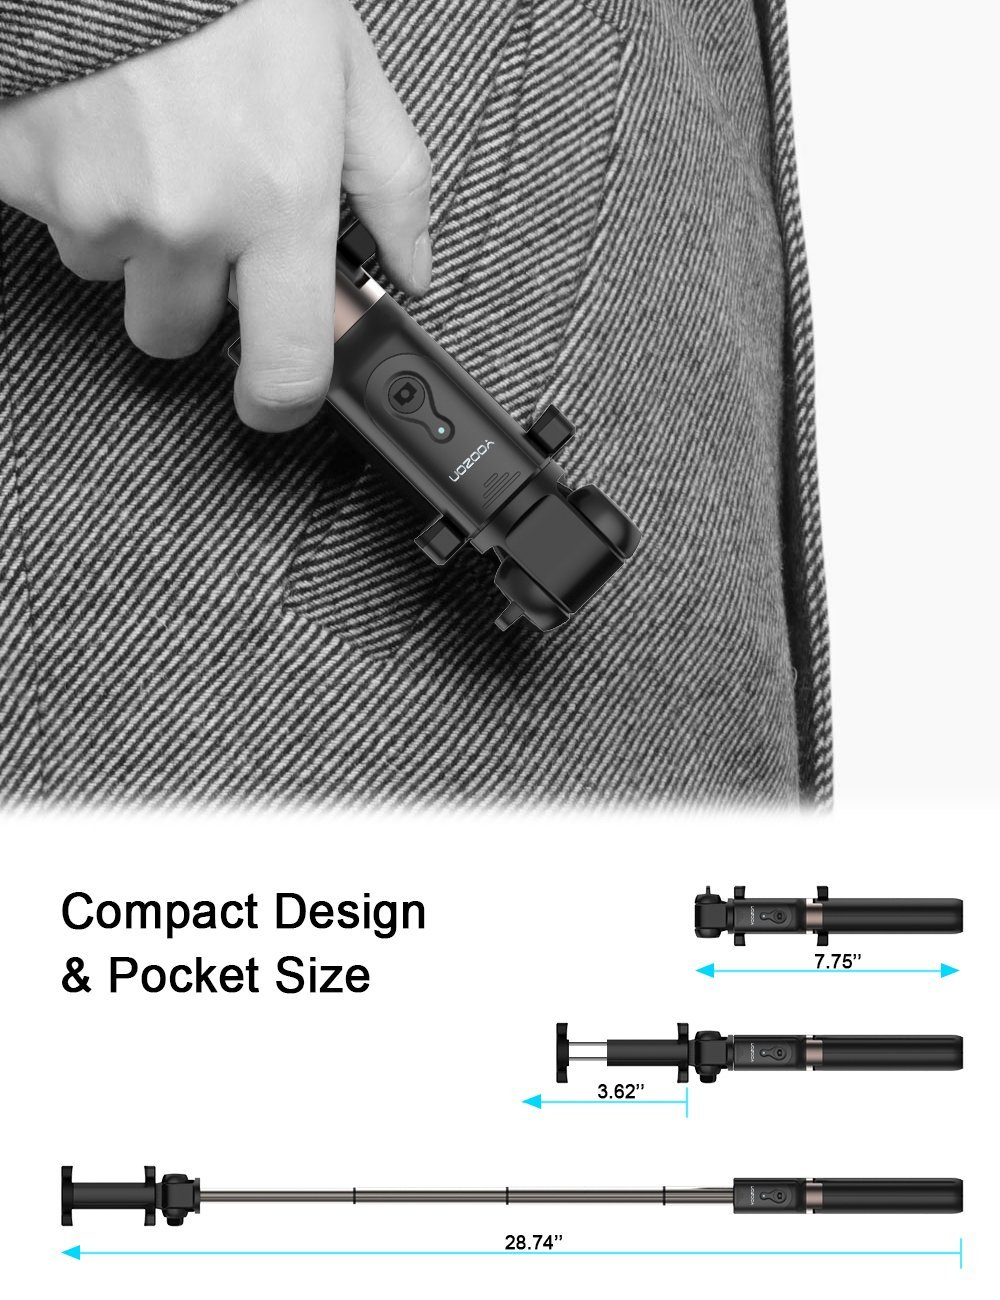 Yoozon Selfie Stick Bluetooth, Extendable Selfie Stick with Wireless Remote and Tripod Stand Selfie Stick for iPhone X /iPhone 8 /8 Plus/iPhone 7/iPhone 7 Plus/Galaxy Note 8/S8 /S8 Plus/Google